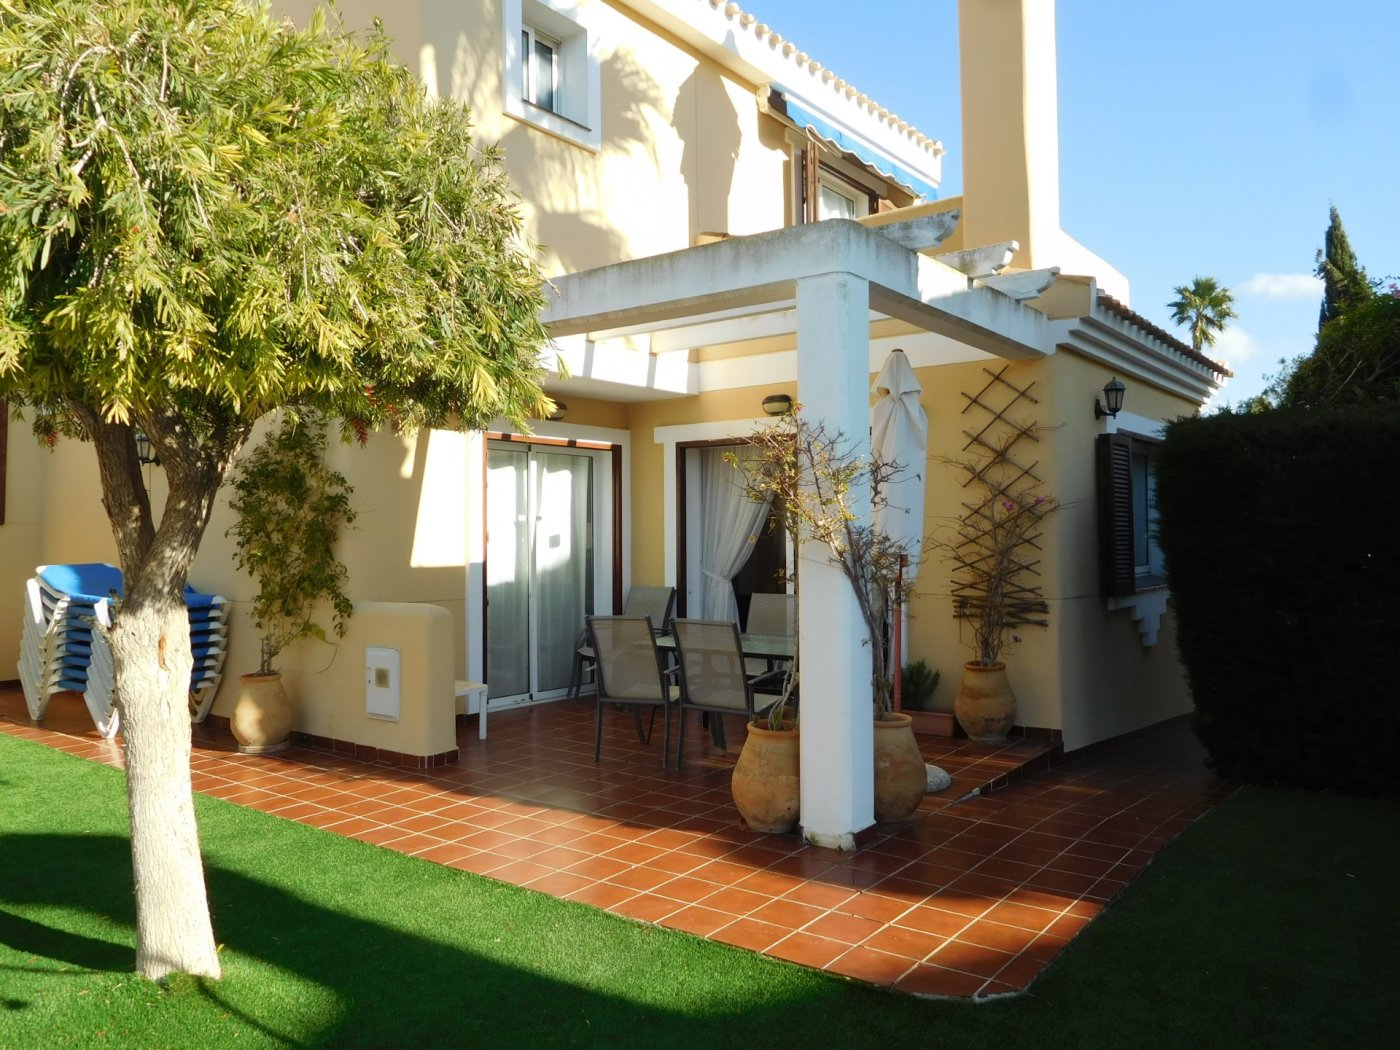 Casa ref 3265-1412 for rent in Los Naranjos Spain - Quality Homes Costa Cálida